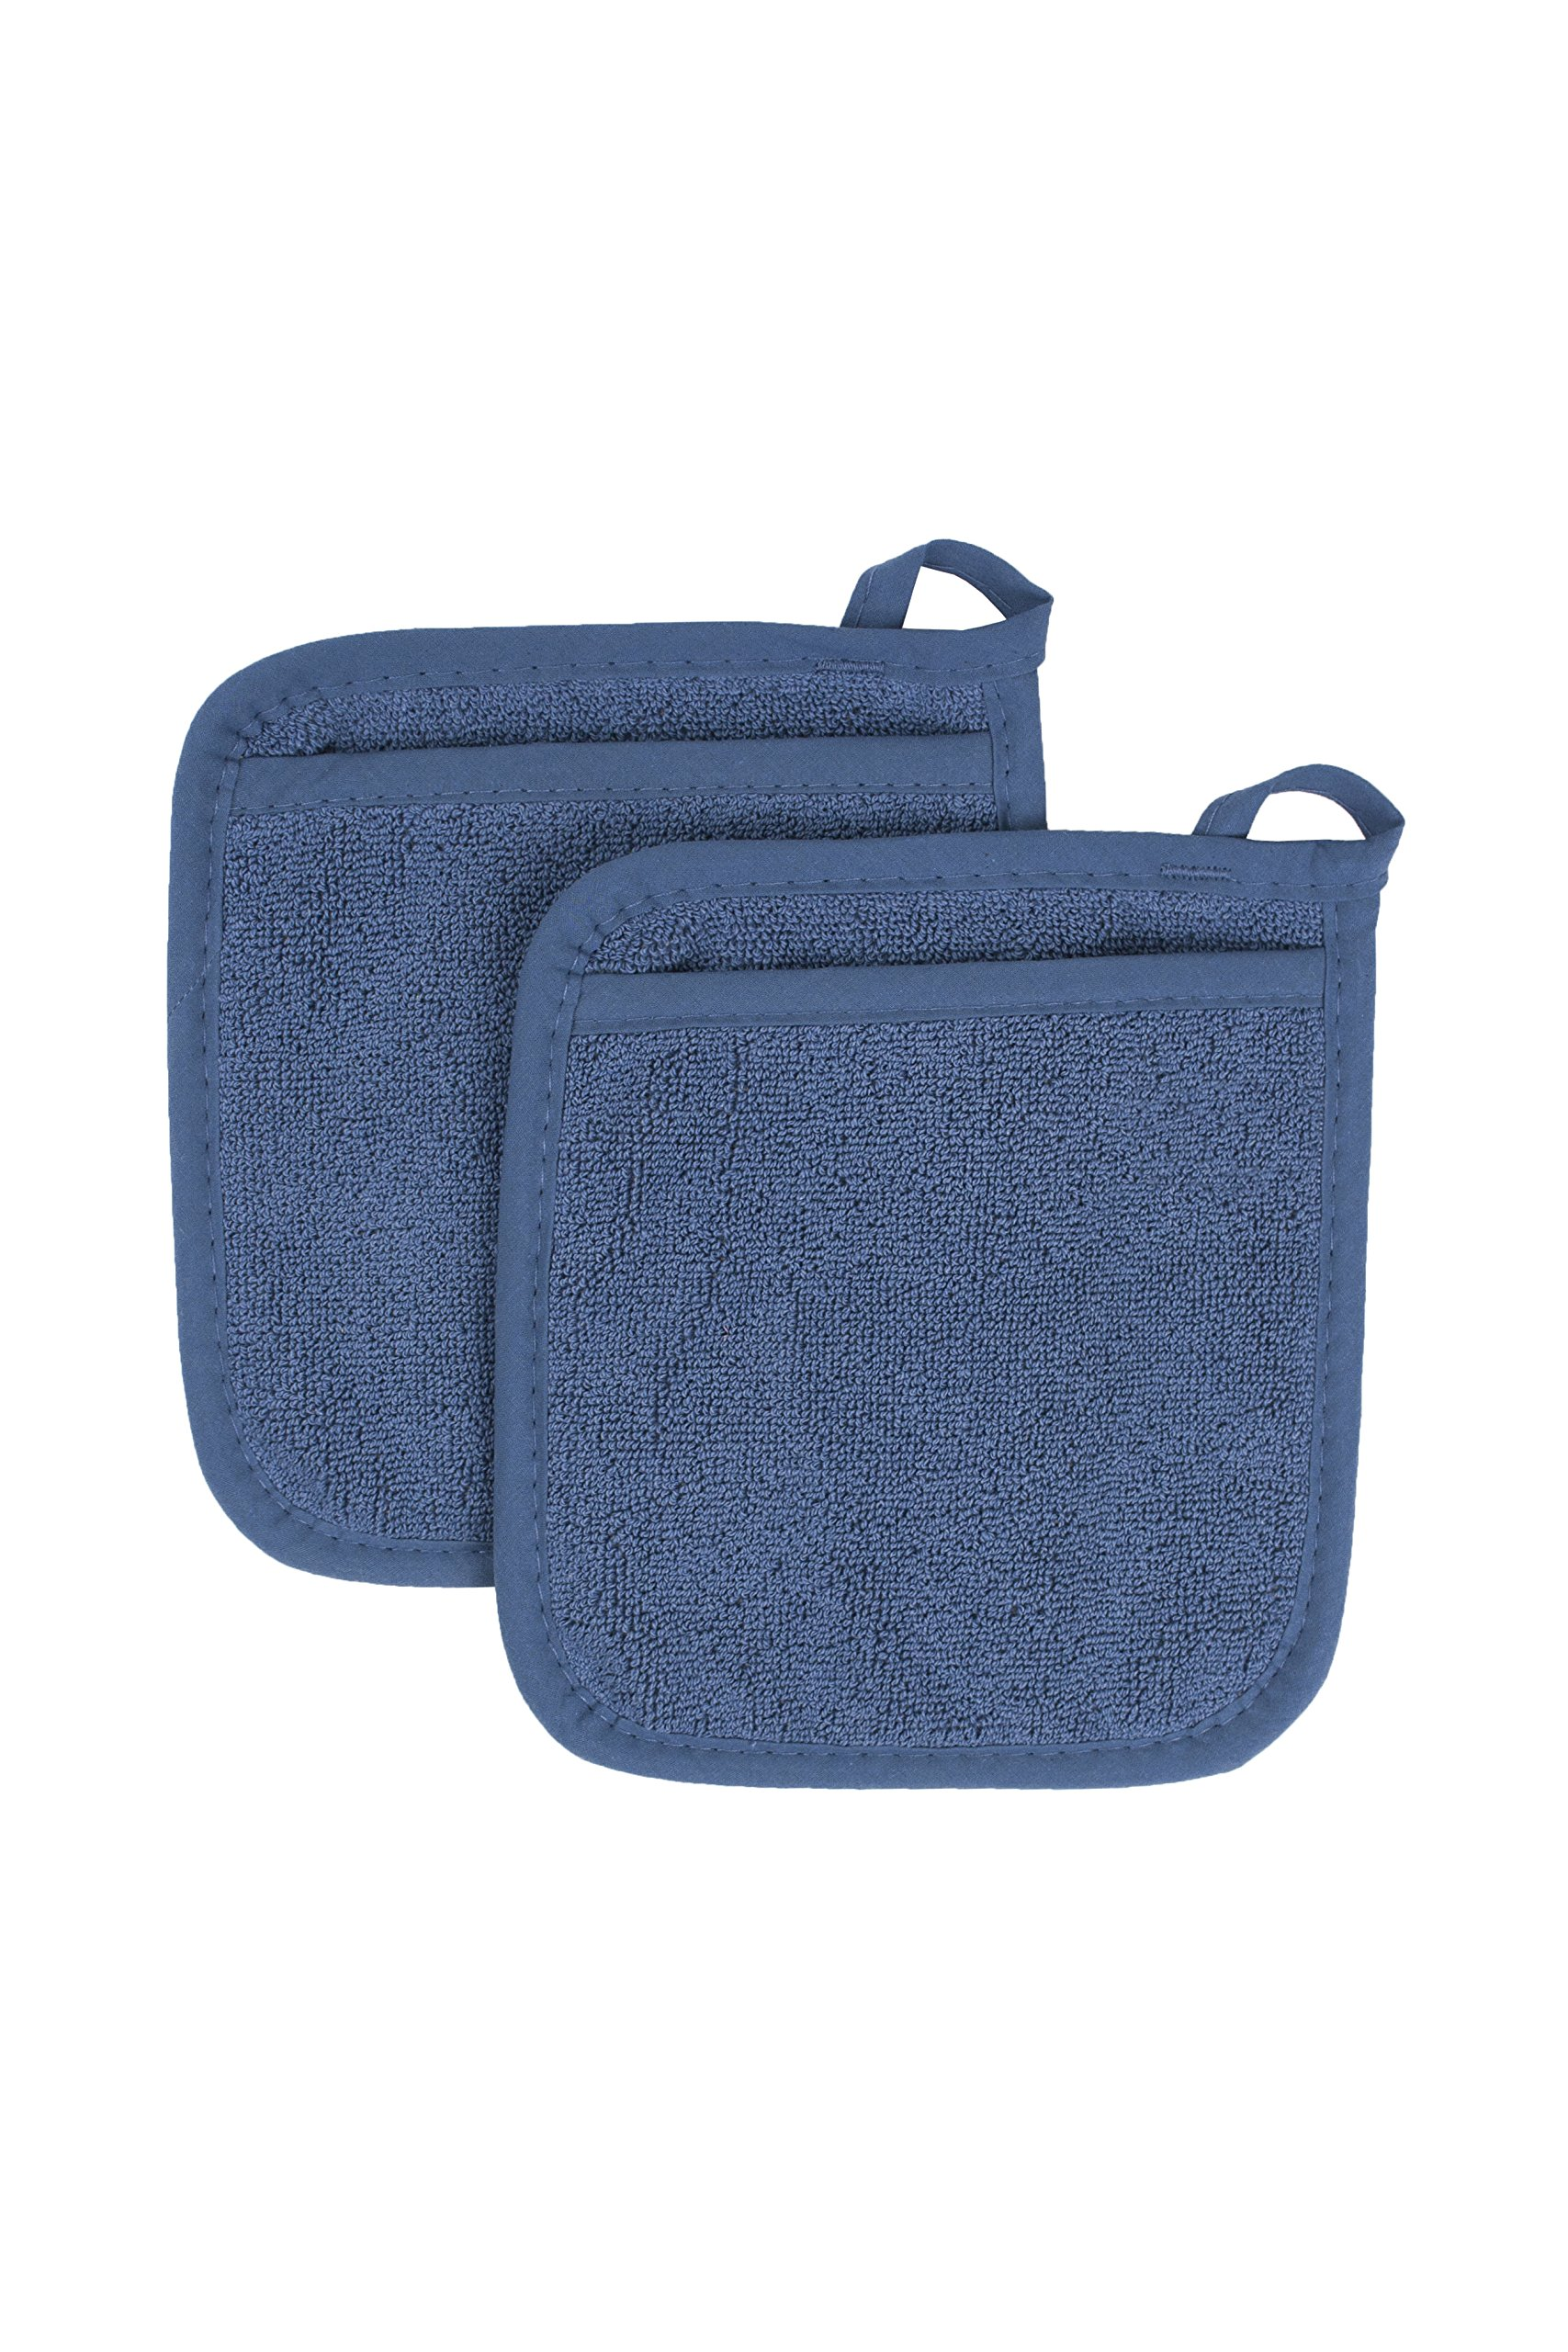 Ritz Royale Collection 100% Cotton Terry Cloth Pocket Mitt Set, Dual-Function Hot Pad / Pot Holder, 2-Piece, Federal Blue by Ritz